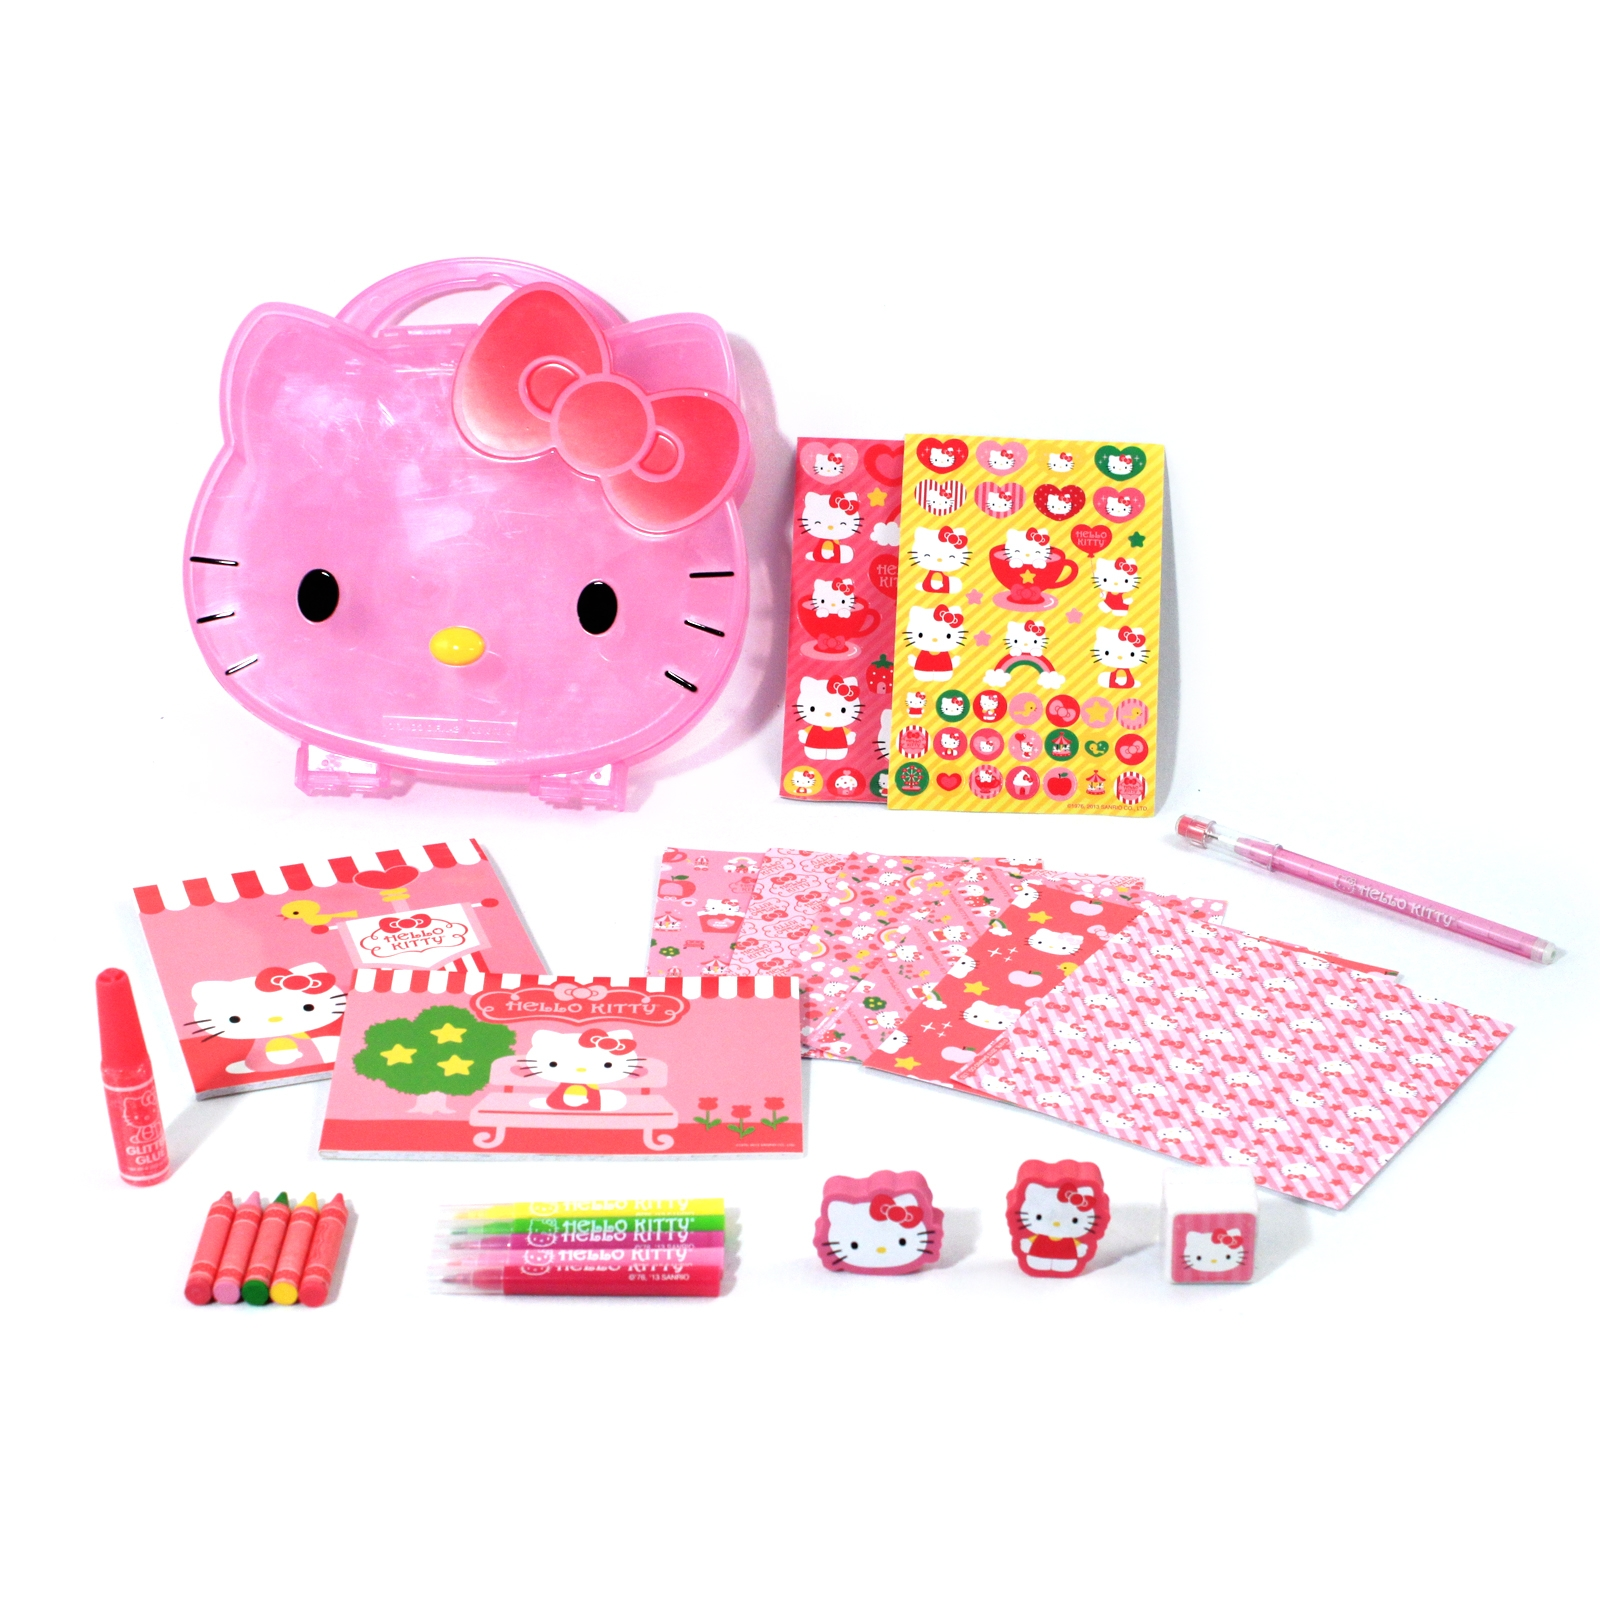 Hello Kitty Stationery and Coloring Book Art Supplies Set